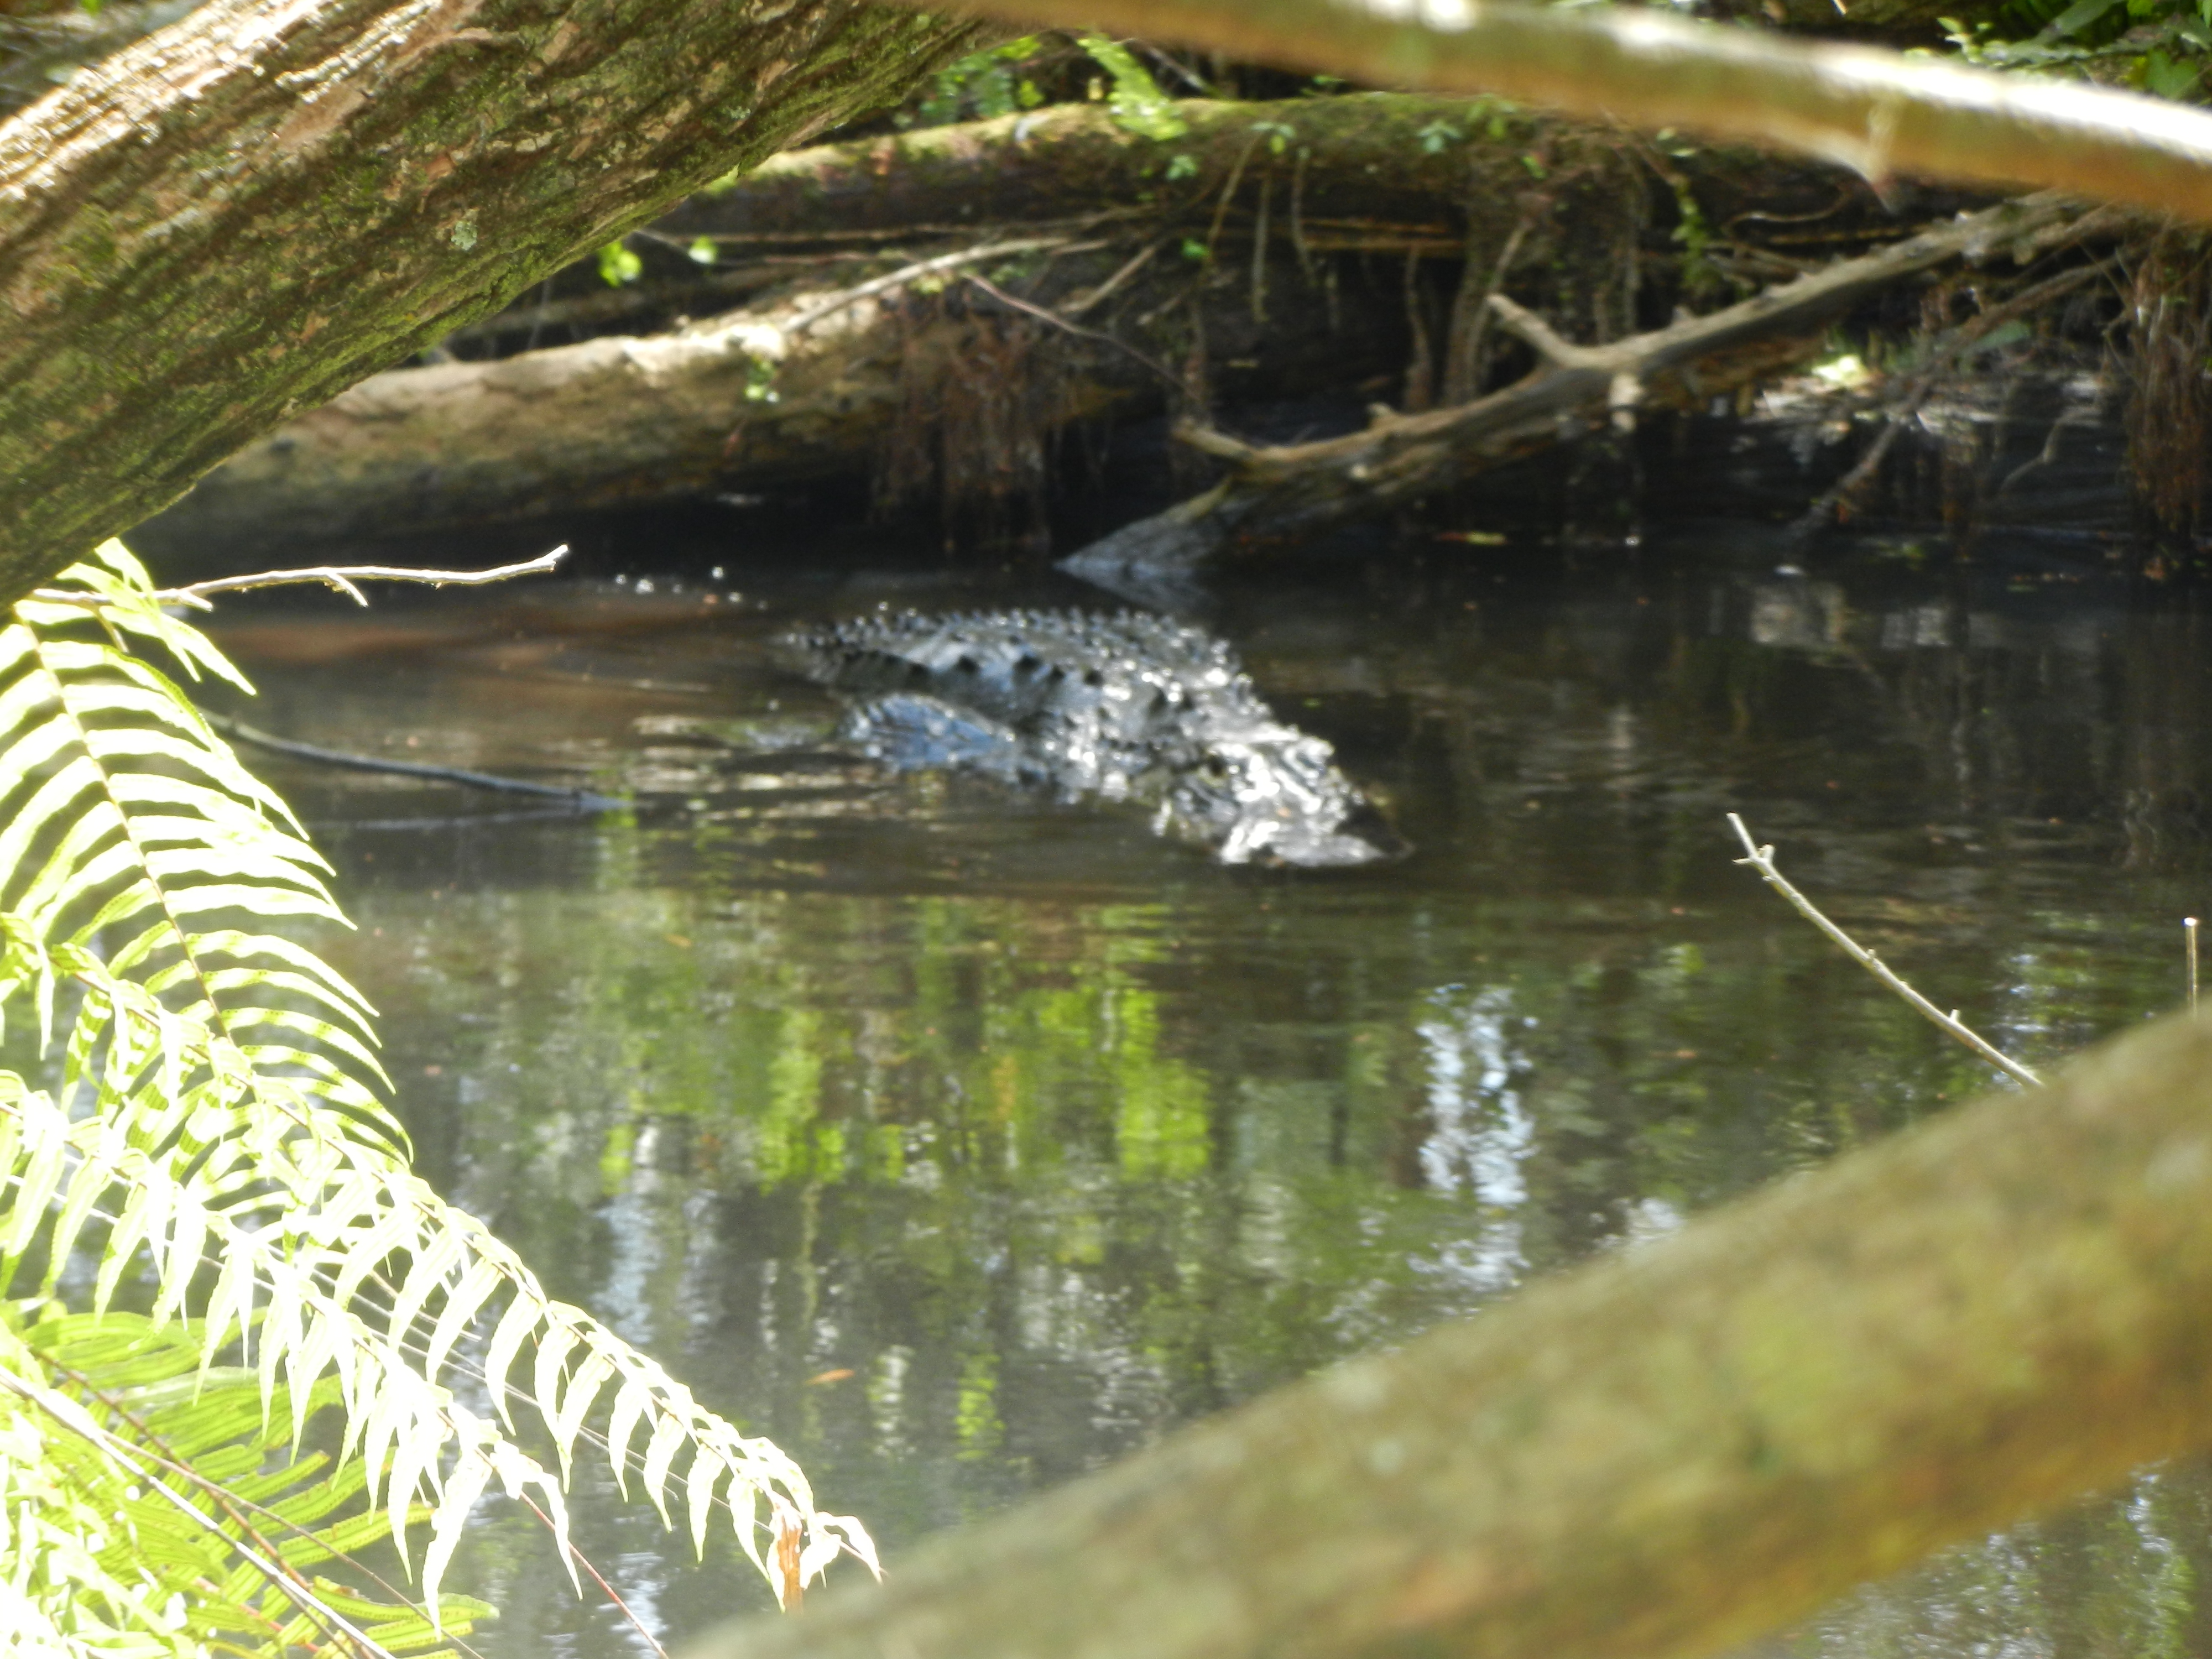 Alligator floating in the water near a log.